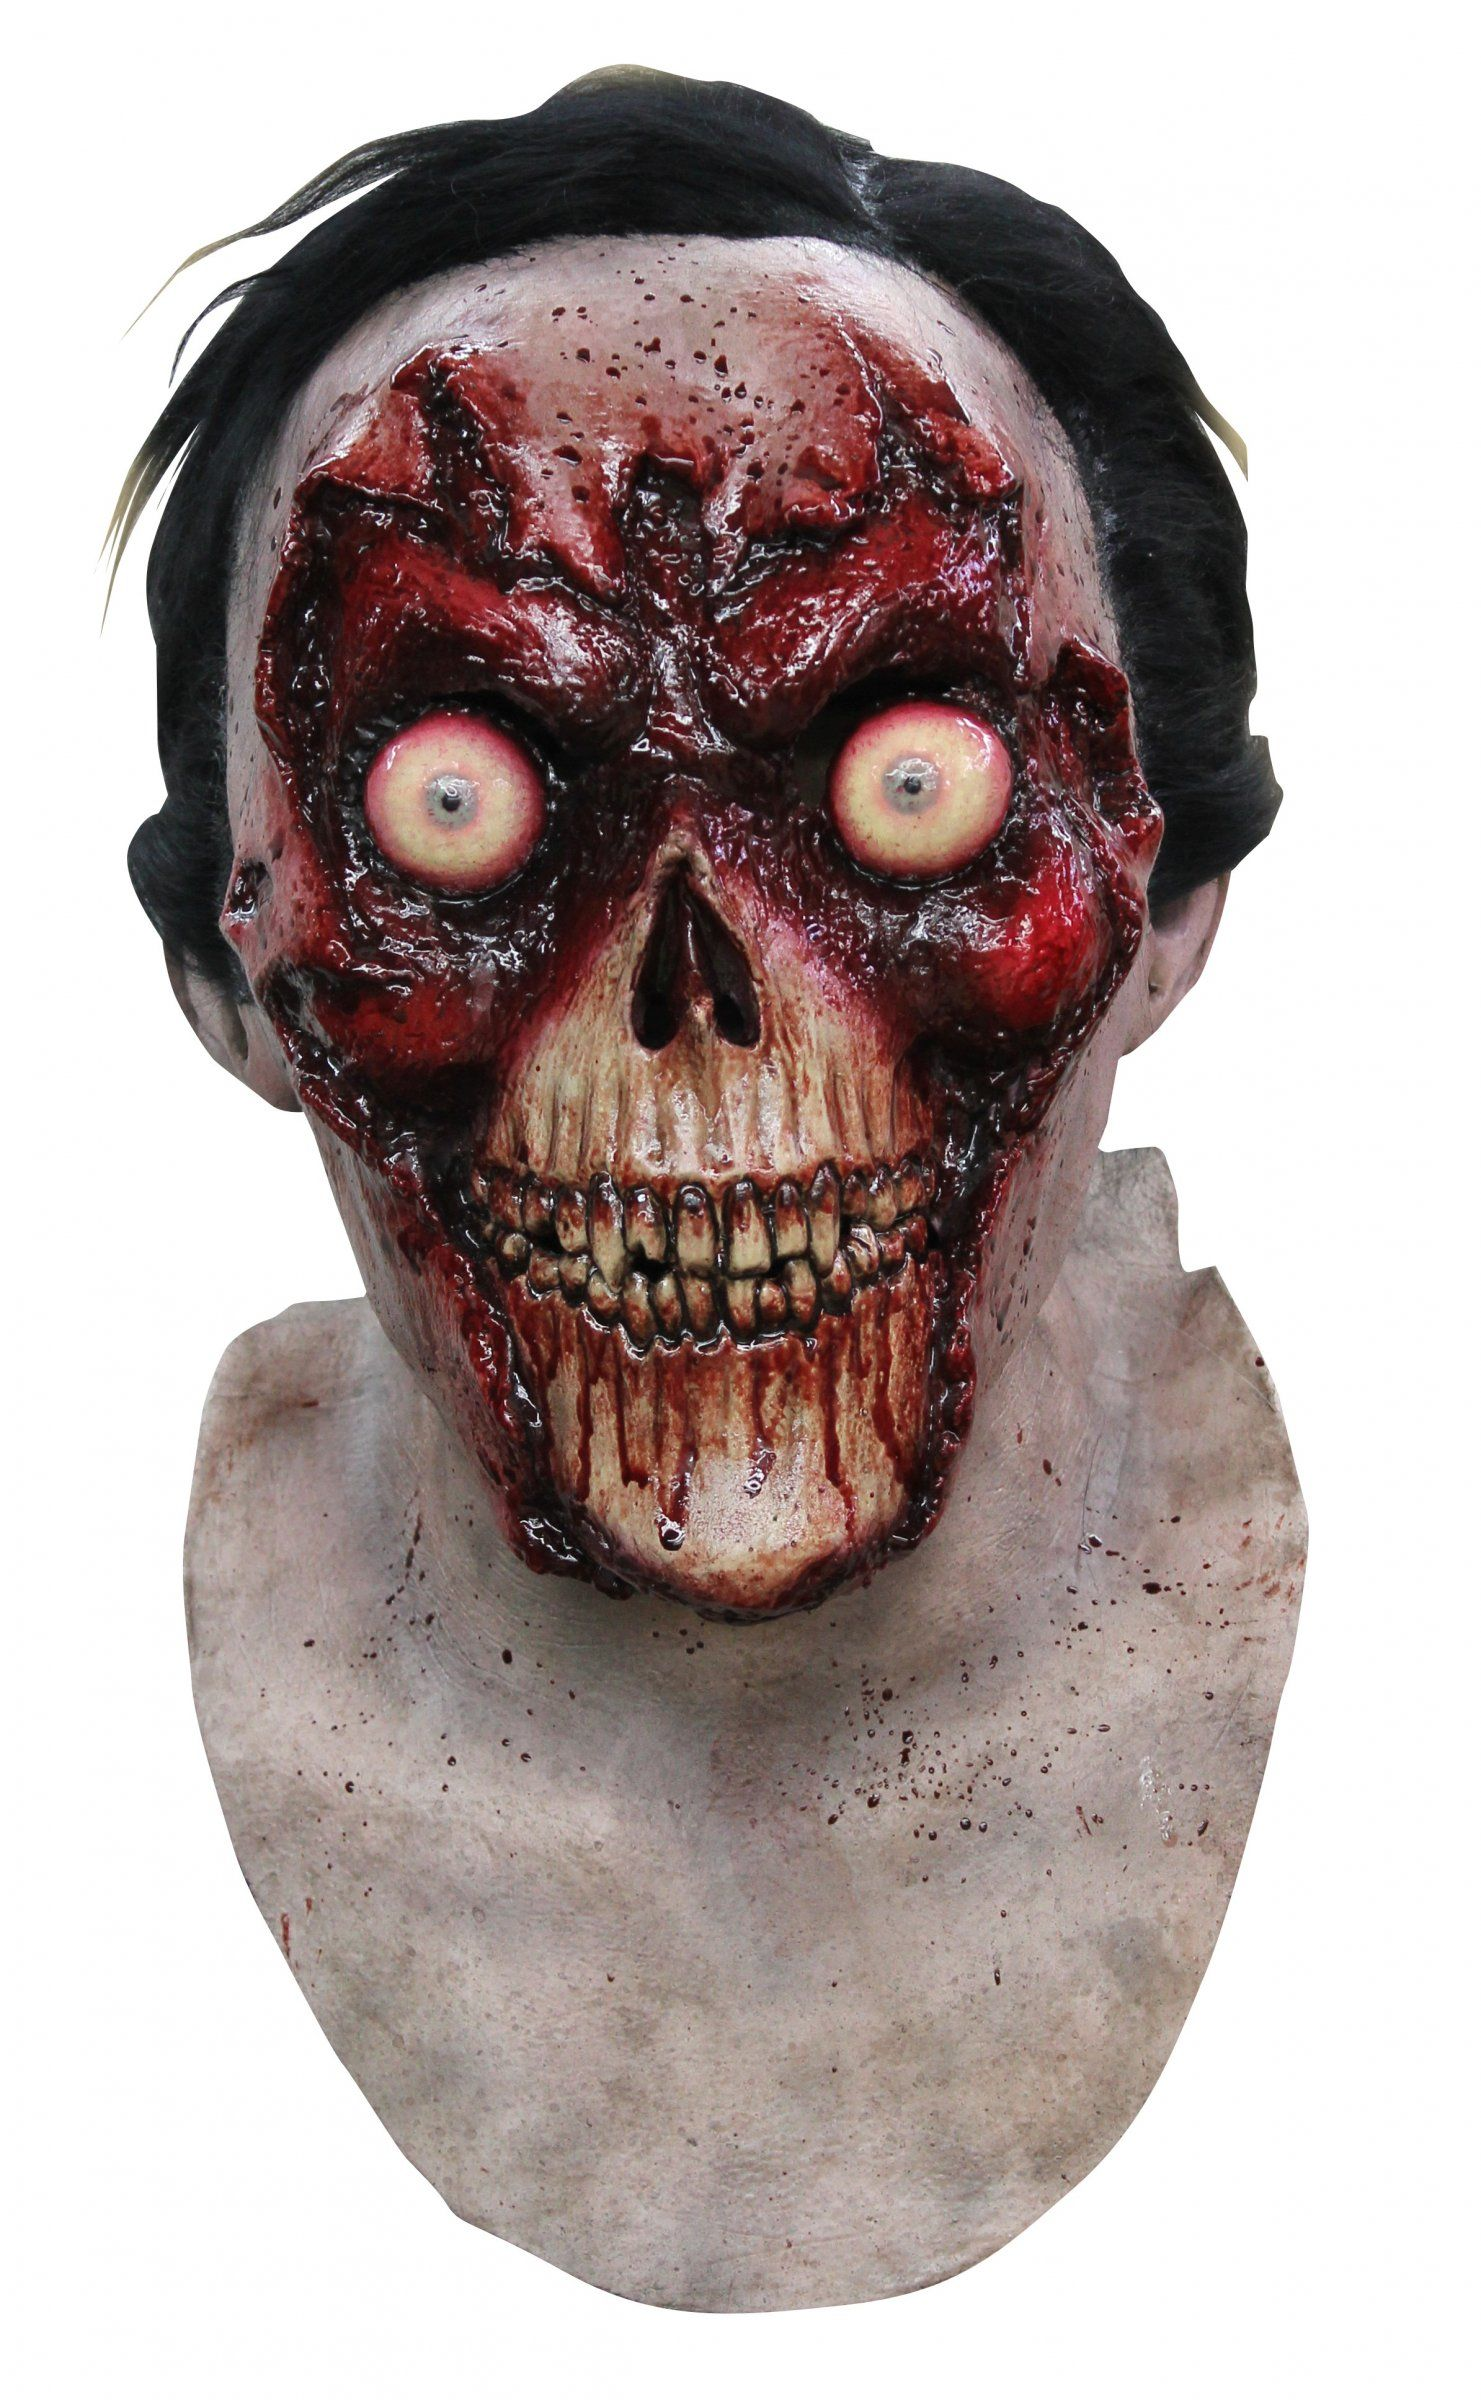 Pin by Daniel Jennings on Horror masks | Pinterest | Horror masks